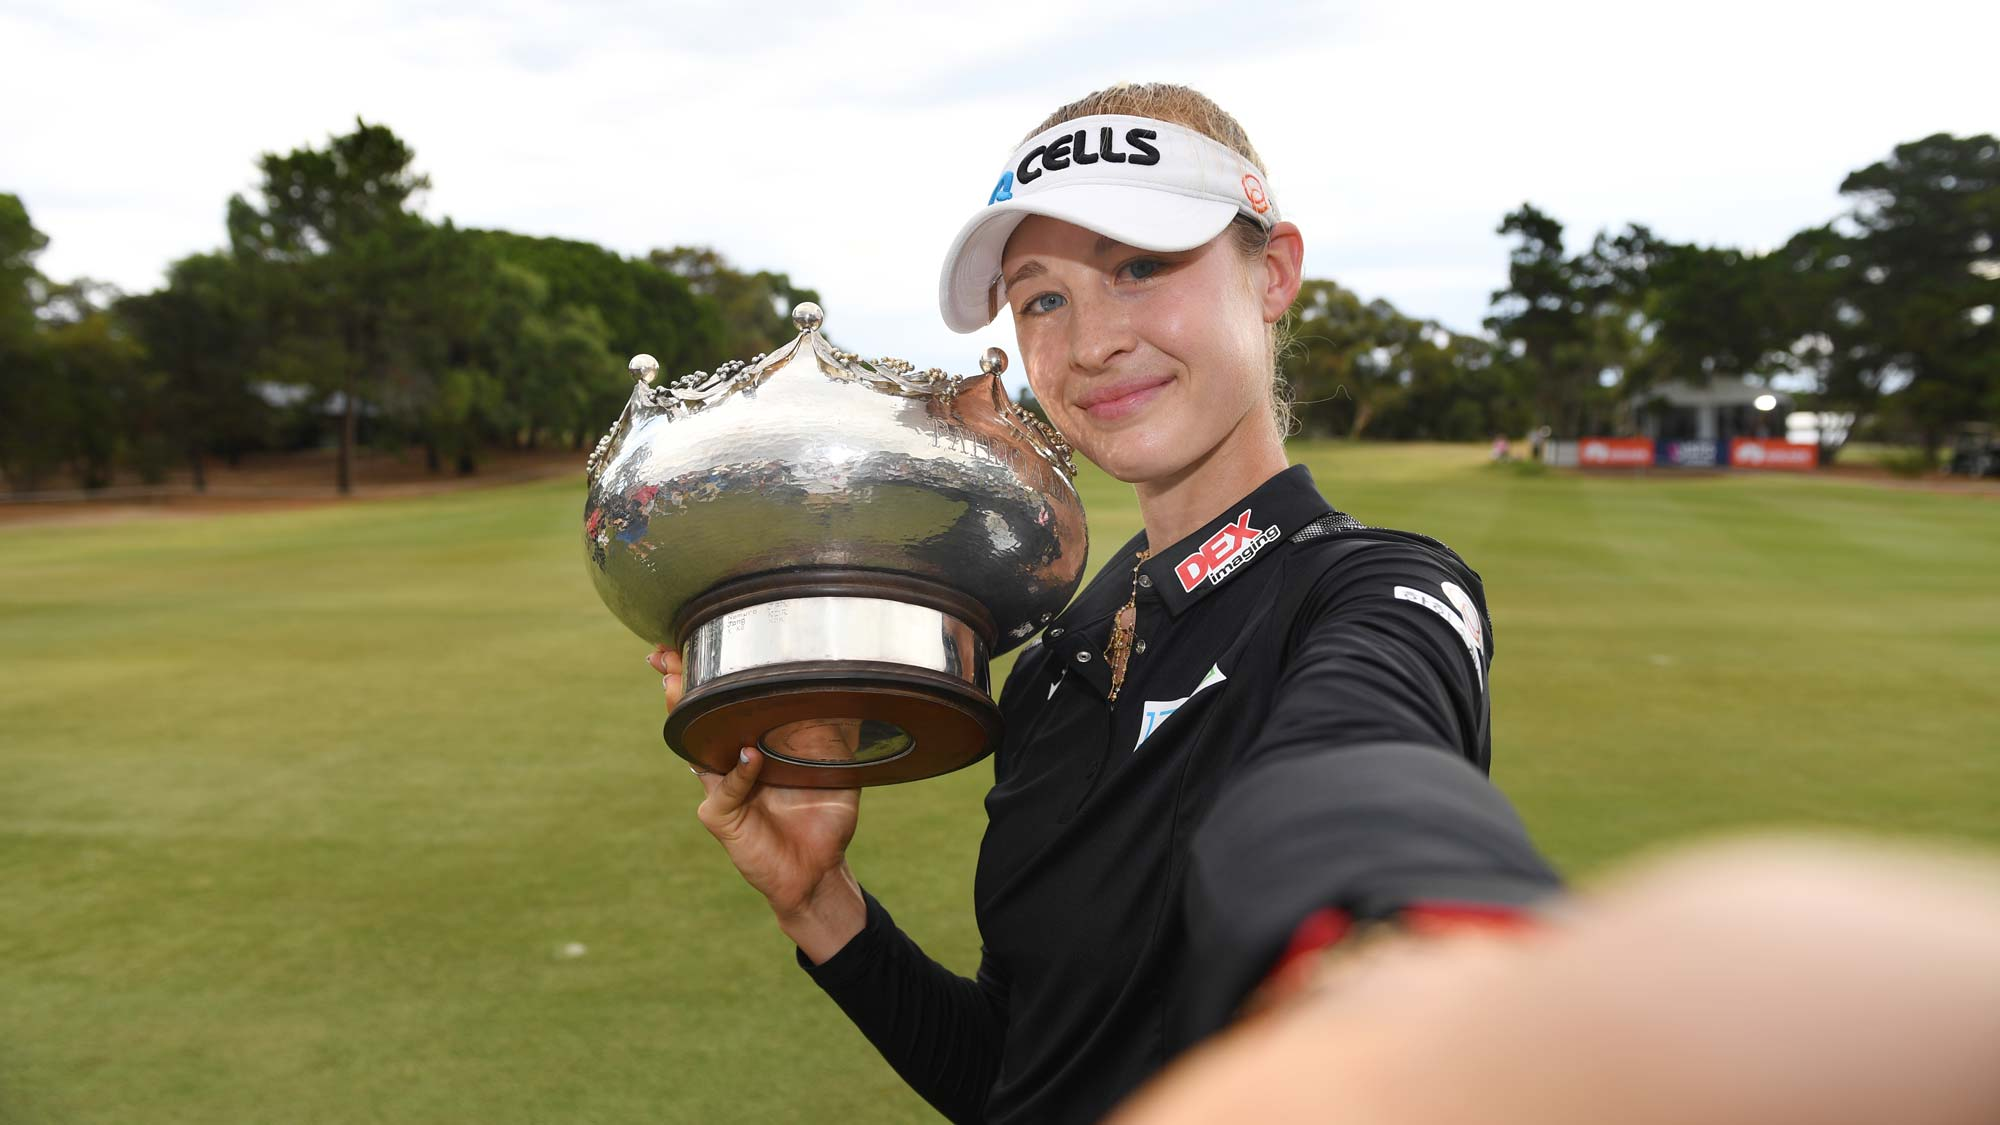 Nelly Korda has her #BagsPacked for the 2020 Diamond Resorts Tournament of Champions presented by IOA after her victory at the ISPS Women's Australian Open